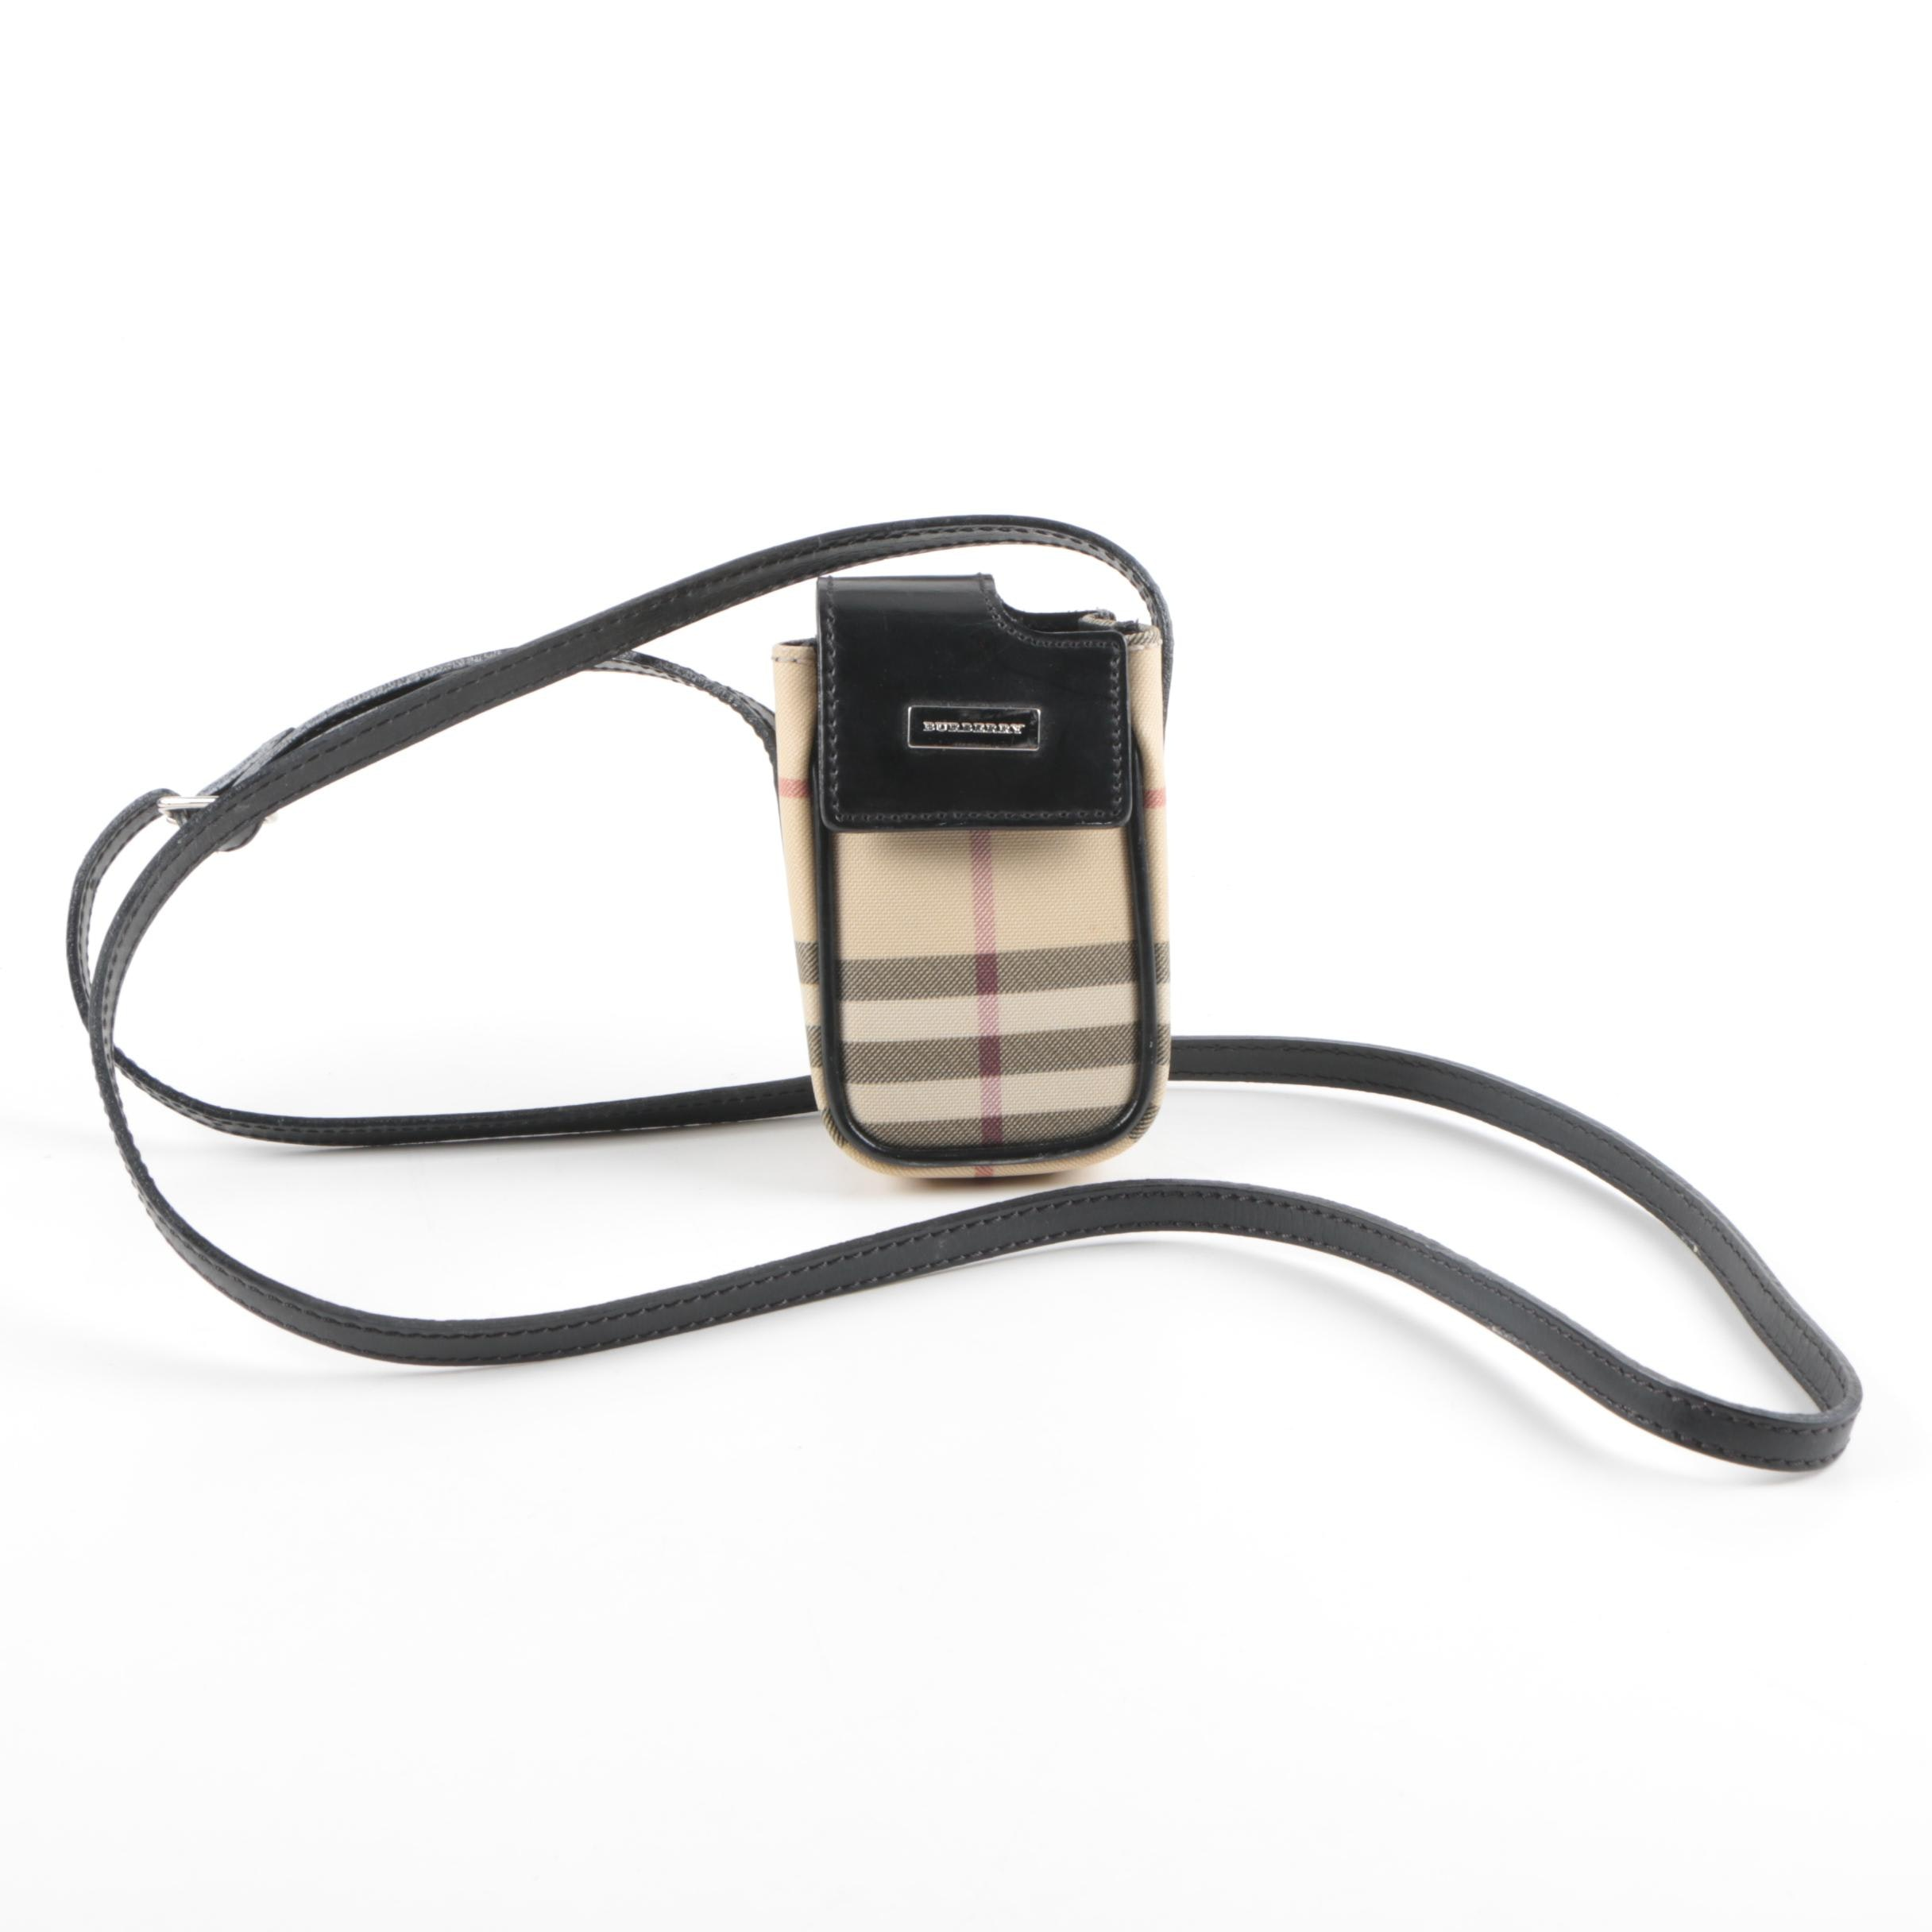 Burberry Cross-Body Cell Phone Pouch